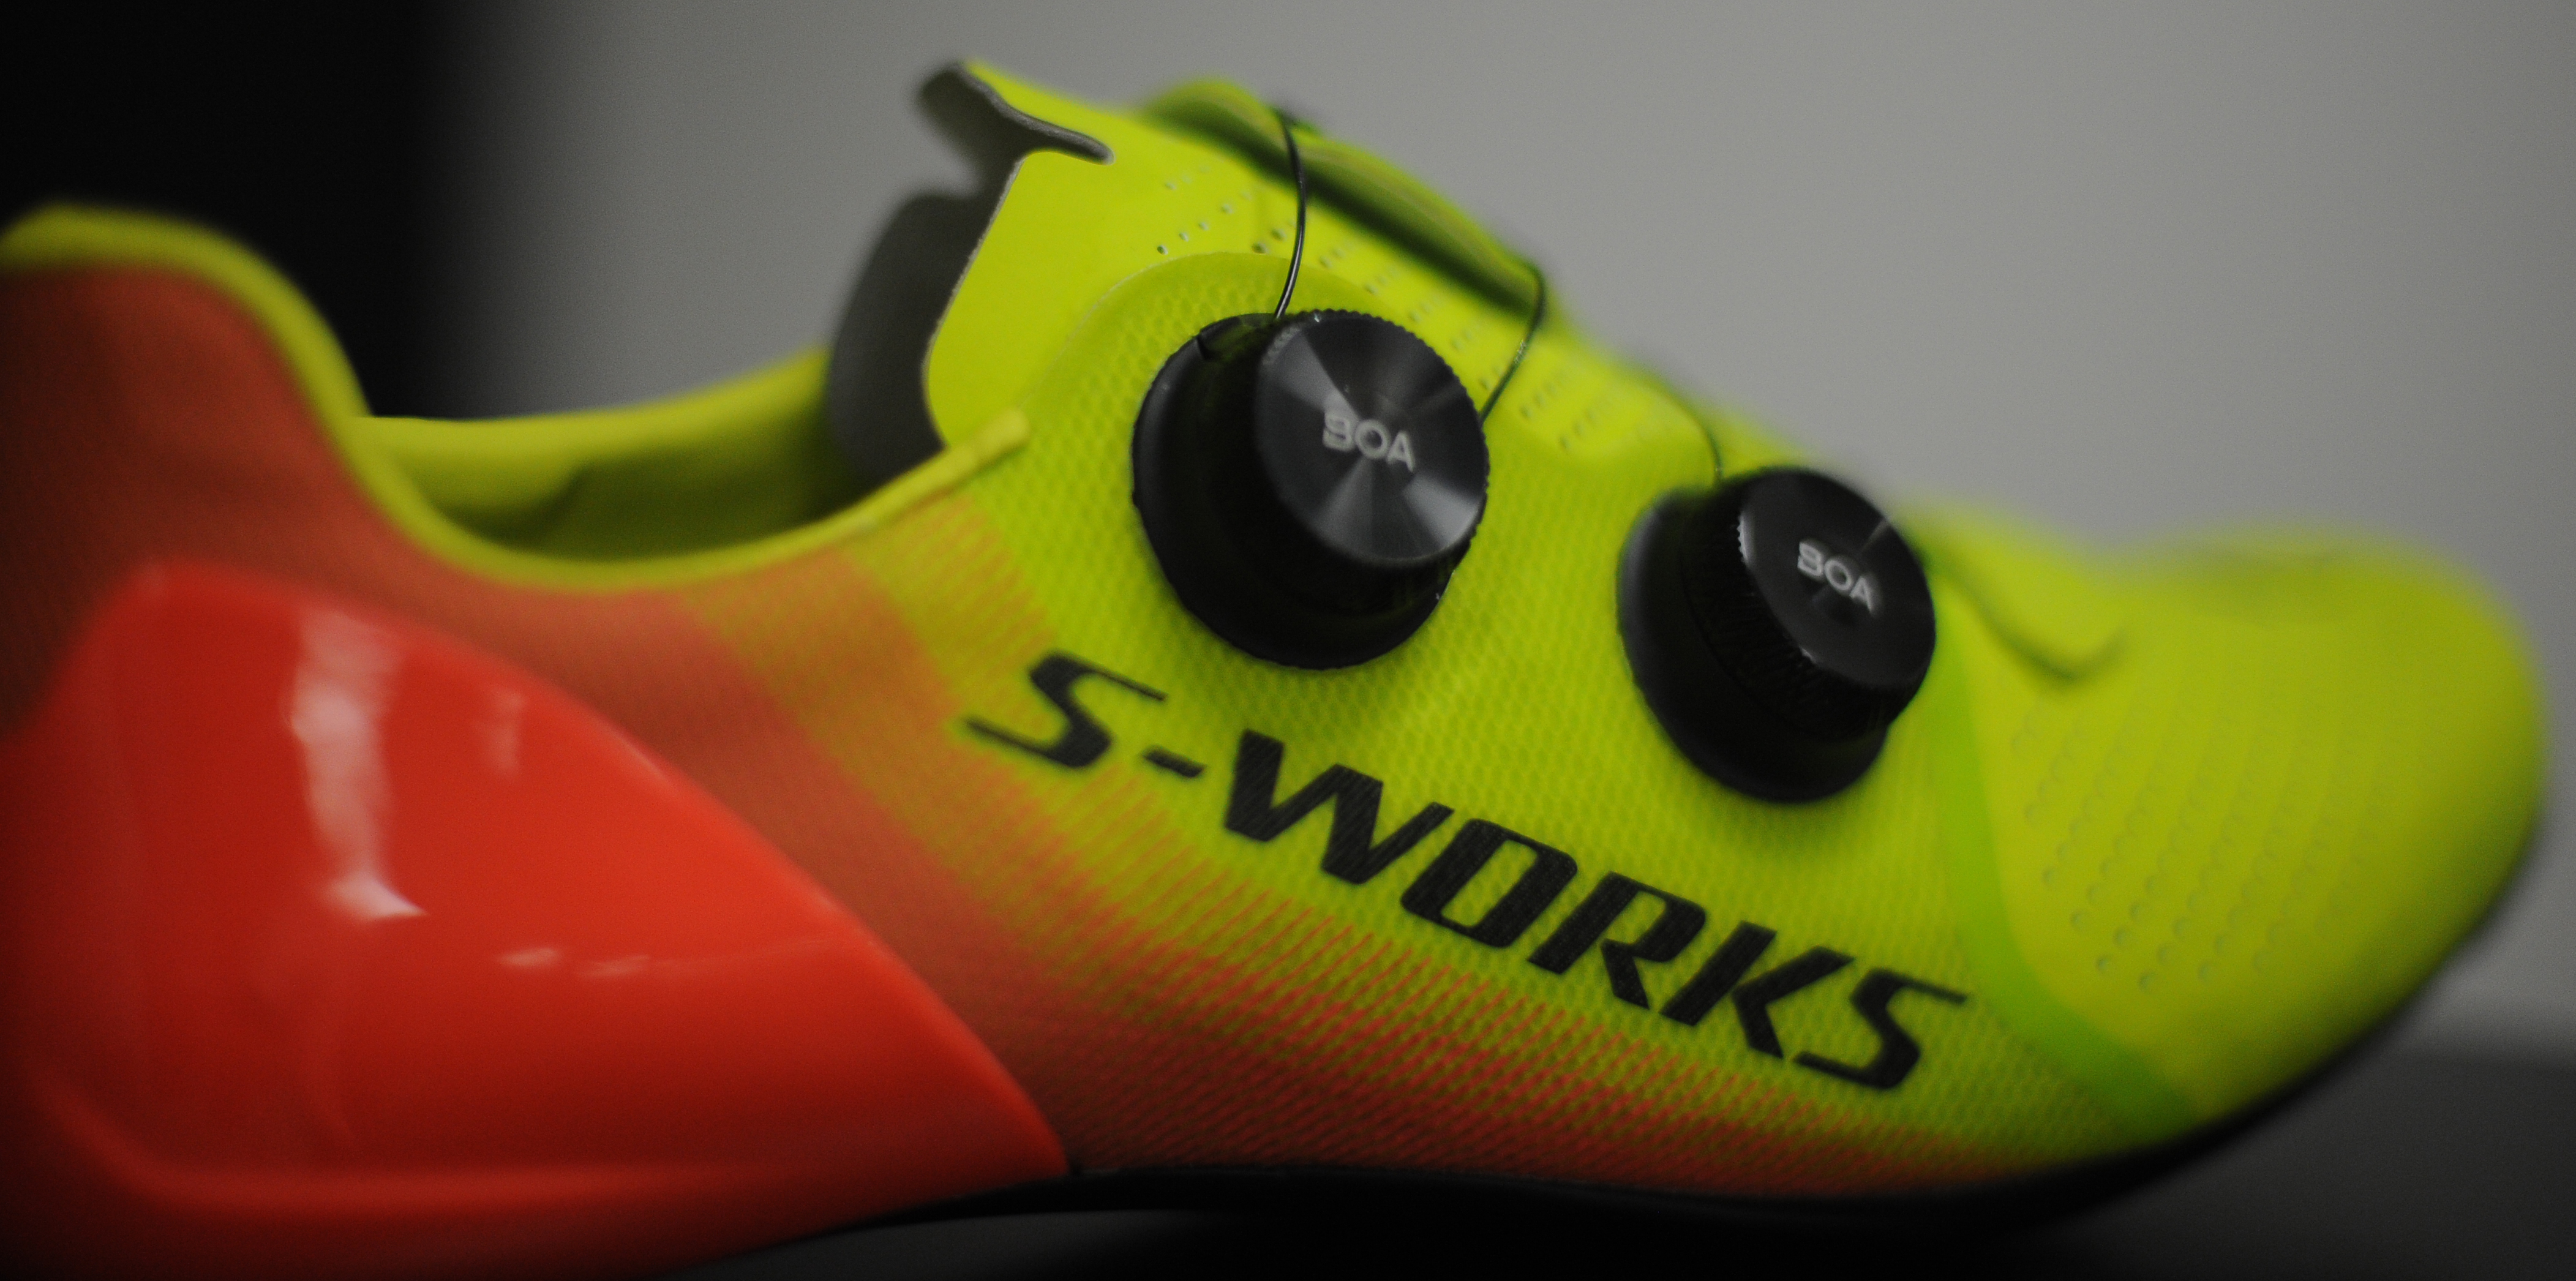 Specialized Road Cycling Shoes Uk